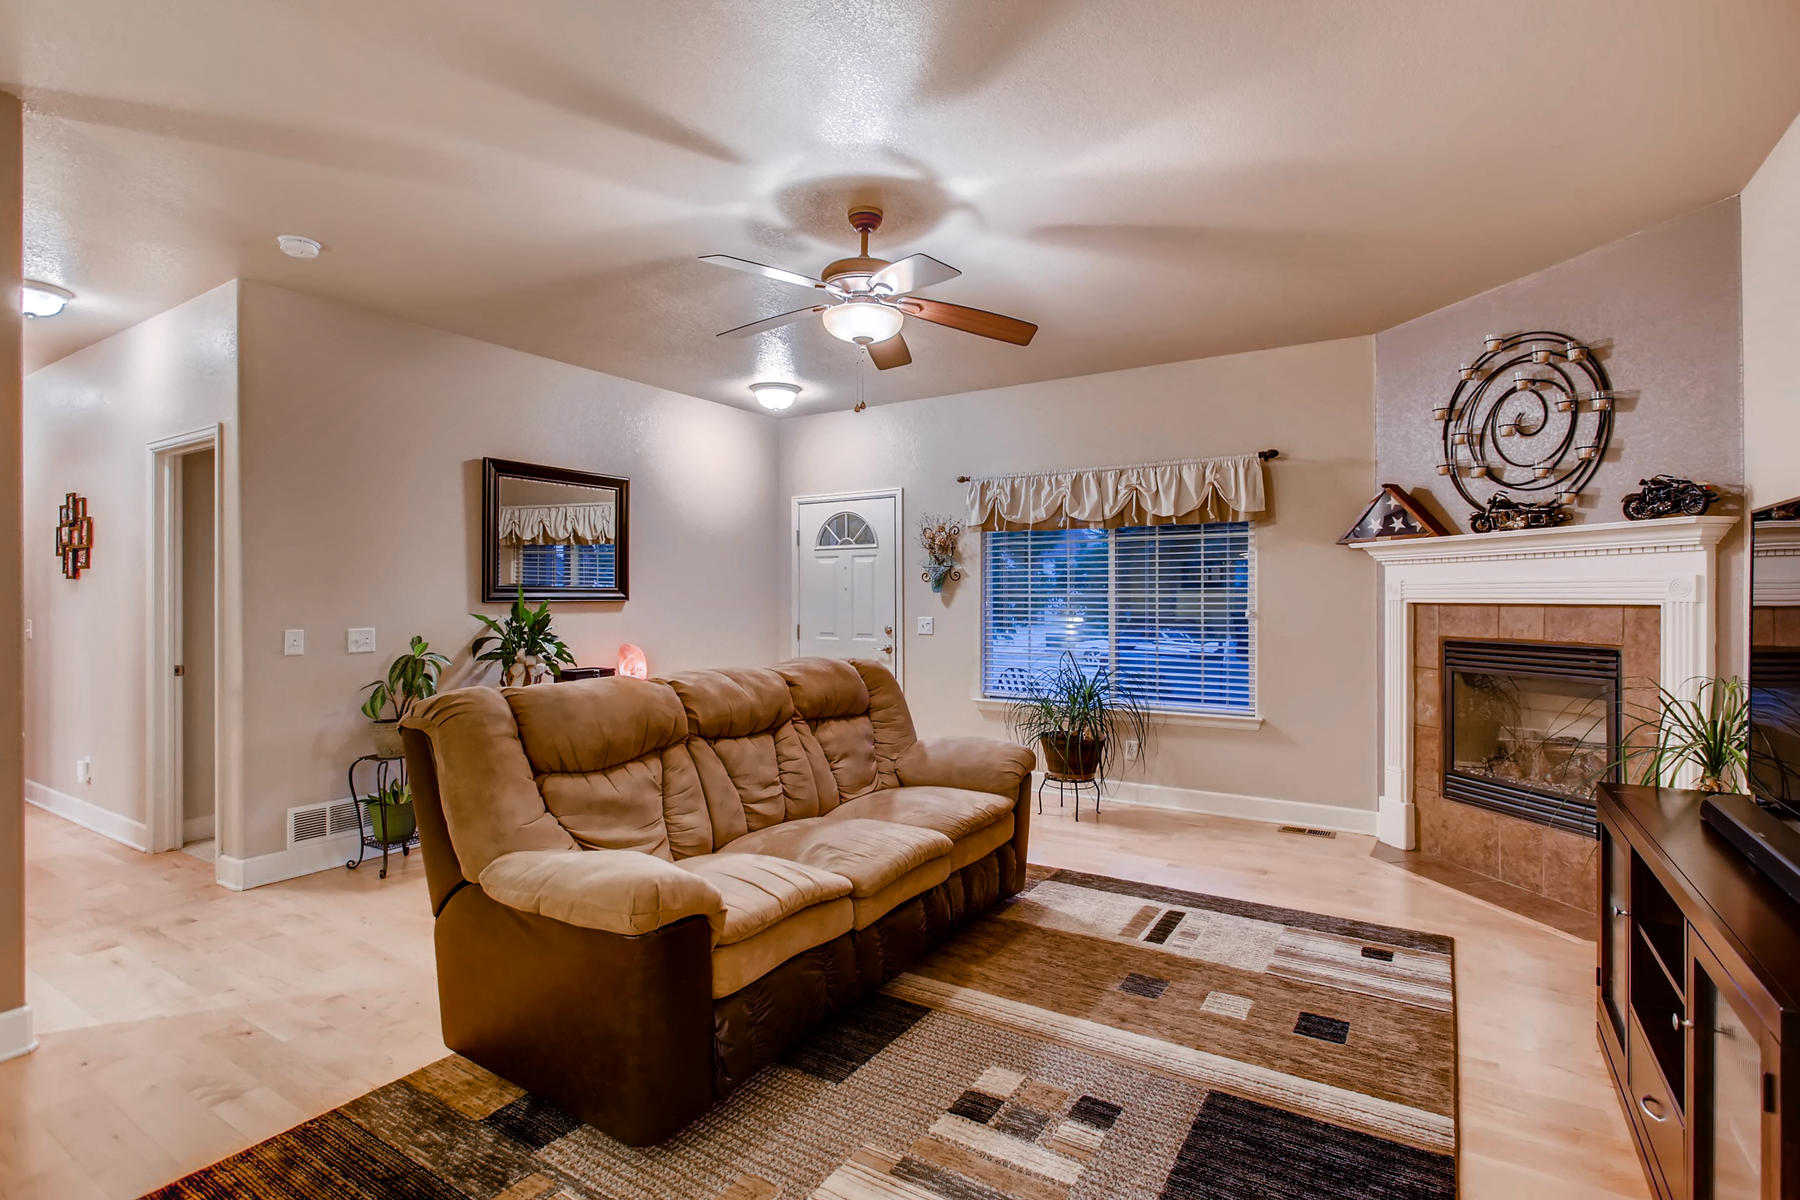 3119 57th Ave Greeley CO 80634-006-3-Living Room-MLS_Size.jpg